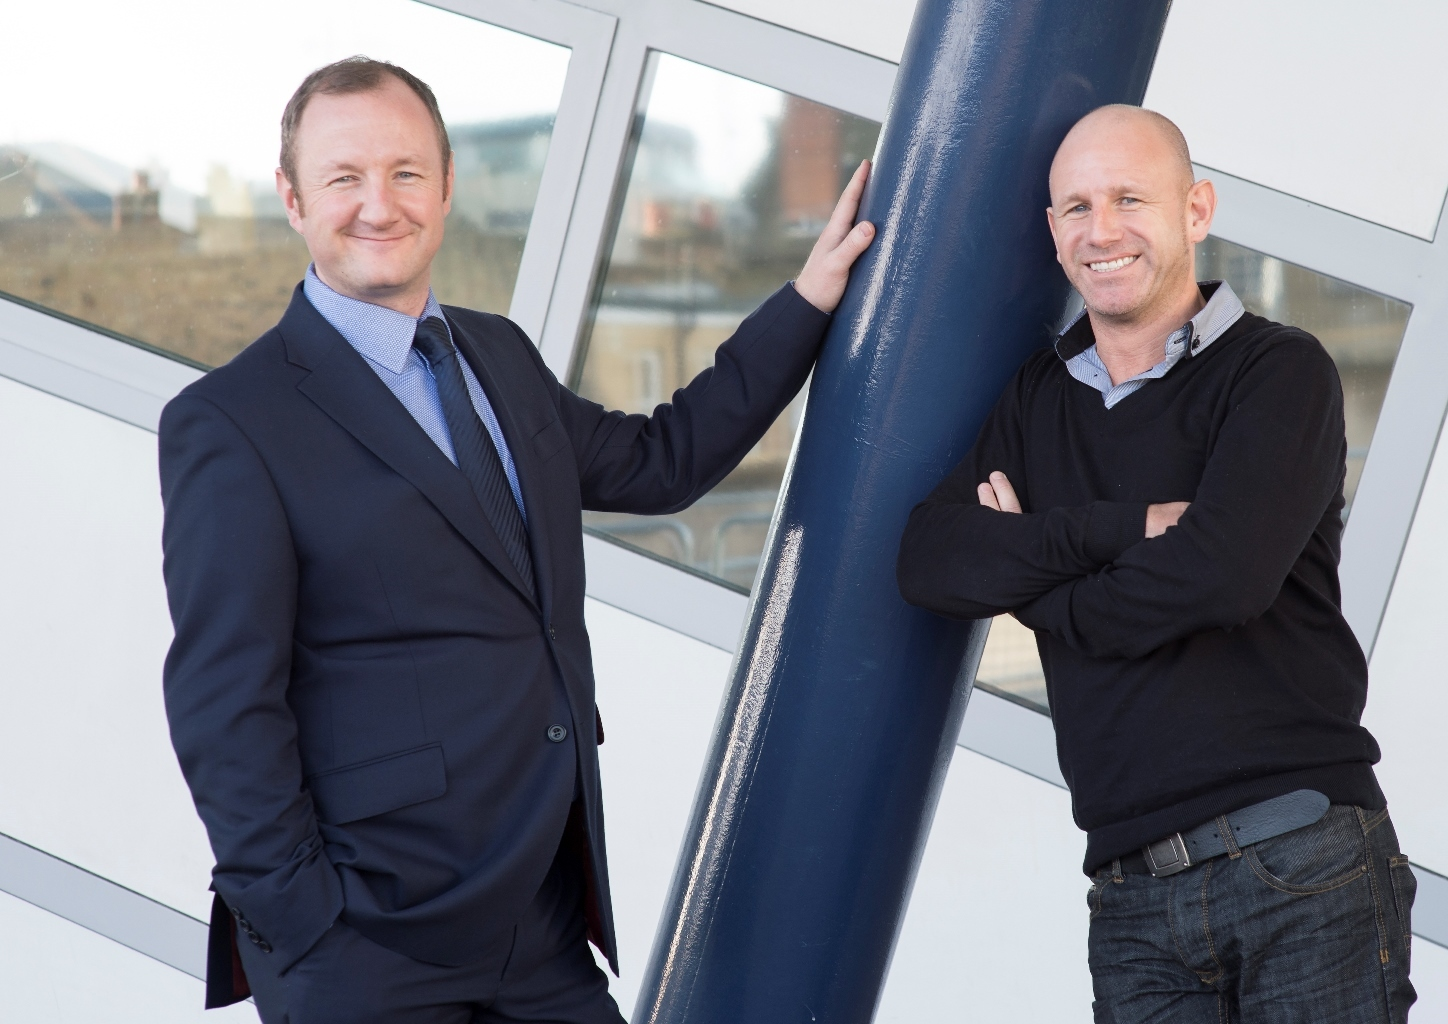 Duncan and Jamie Gledhill, founders of Emailmovers